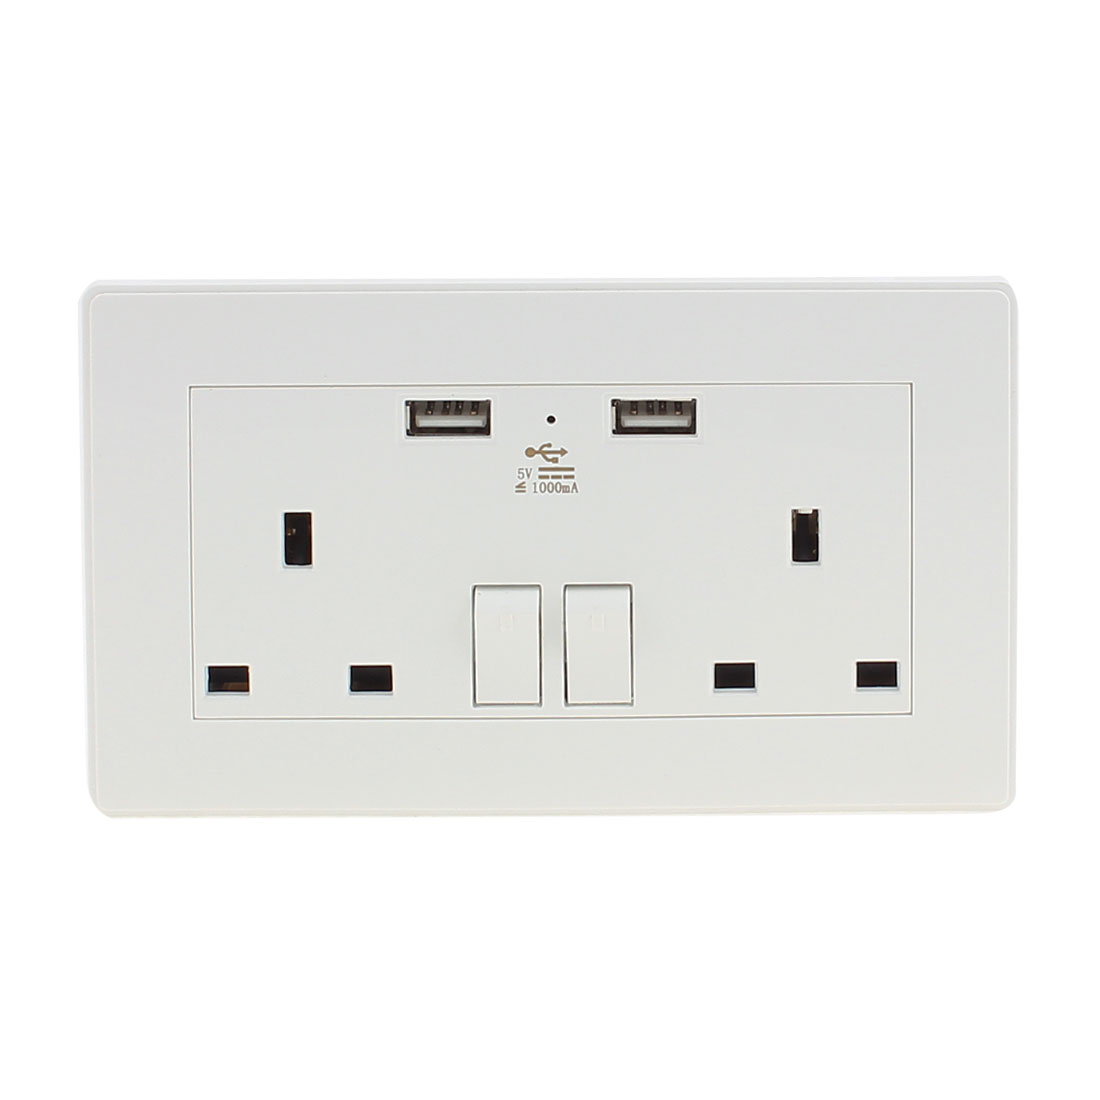 Double AC 110V-250V UK Socket 2 USB Port 5VDC 1000mA Charger Charging Power Switch Wall Outlet